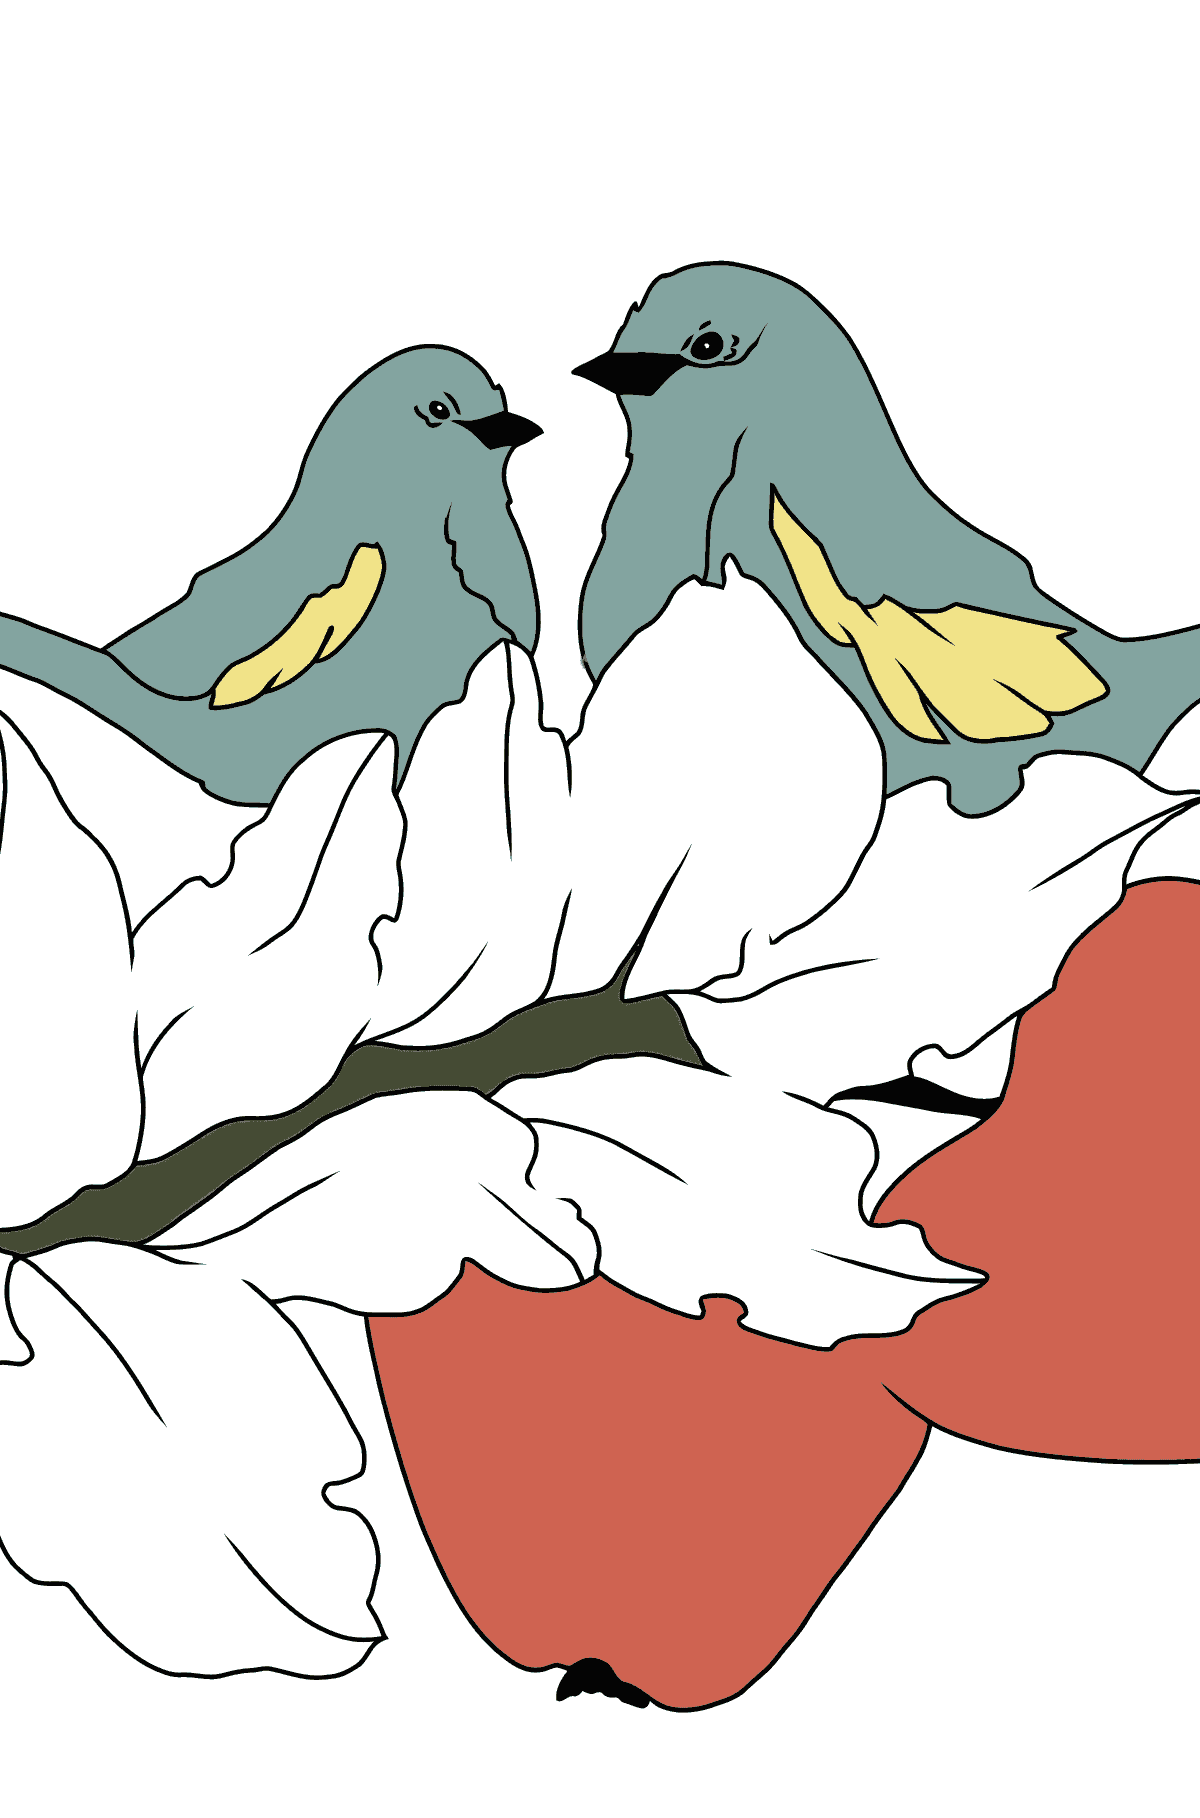 Autumn Coloring Page - Birds on the Branch of an Apple Tree - Coloring Pages for Children